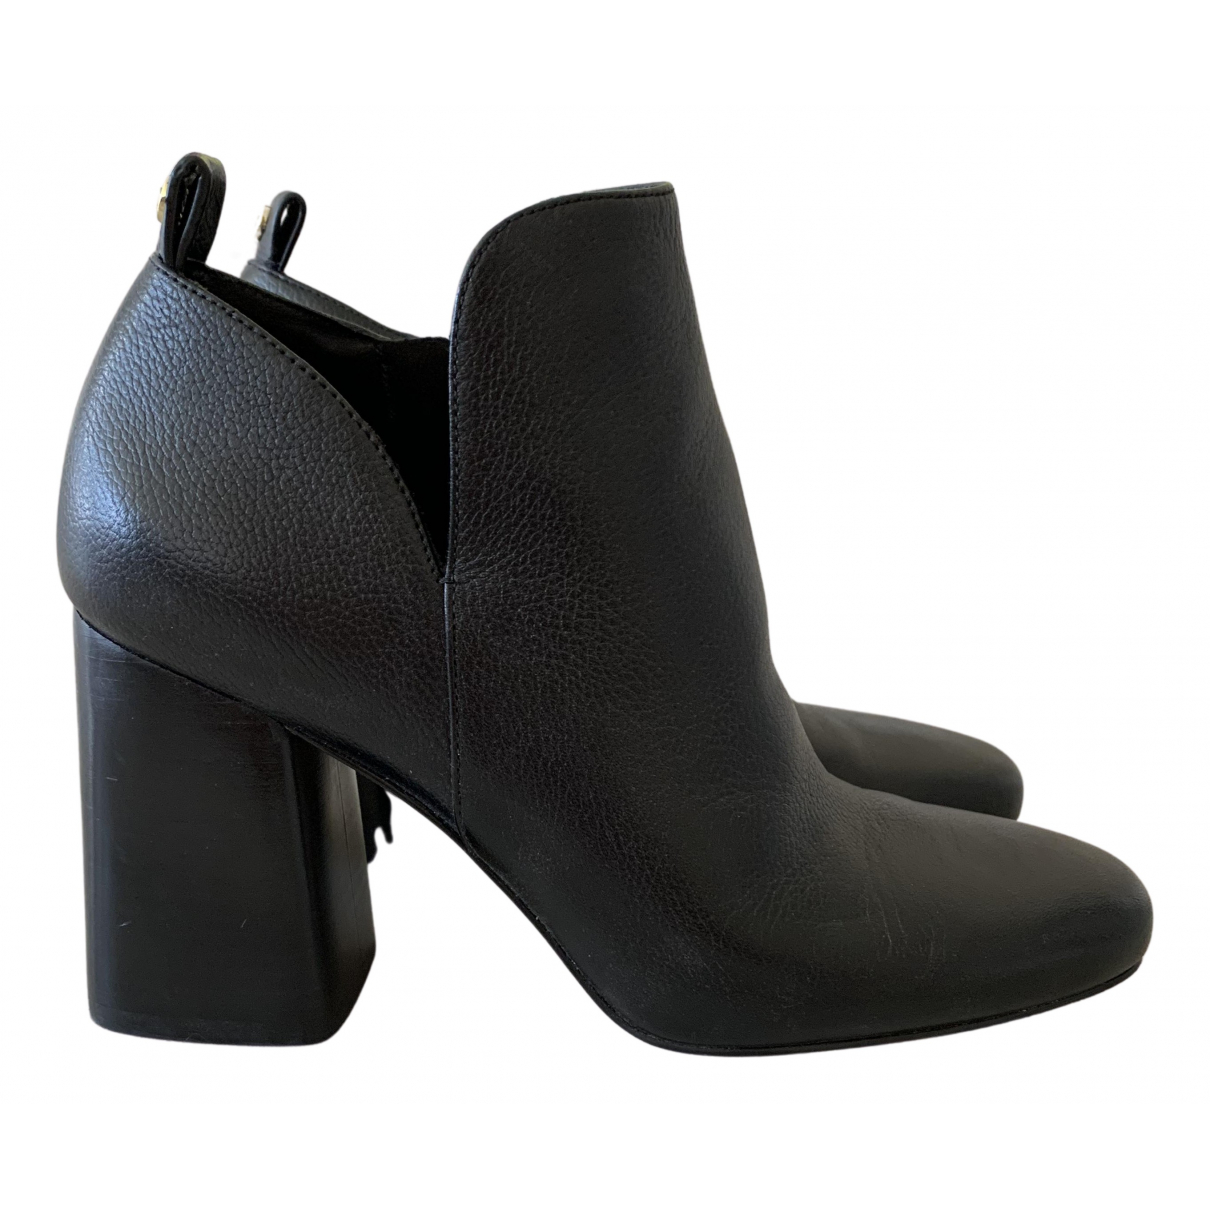 Michael Kors N Black Leather Ankle boots for Women 37 IT